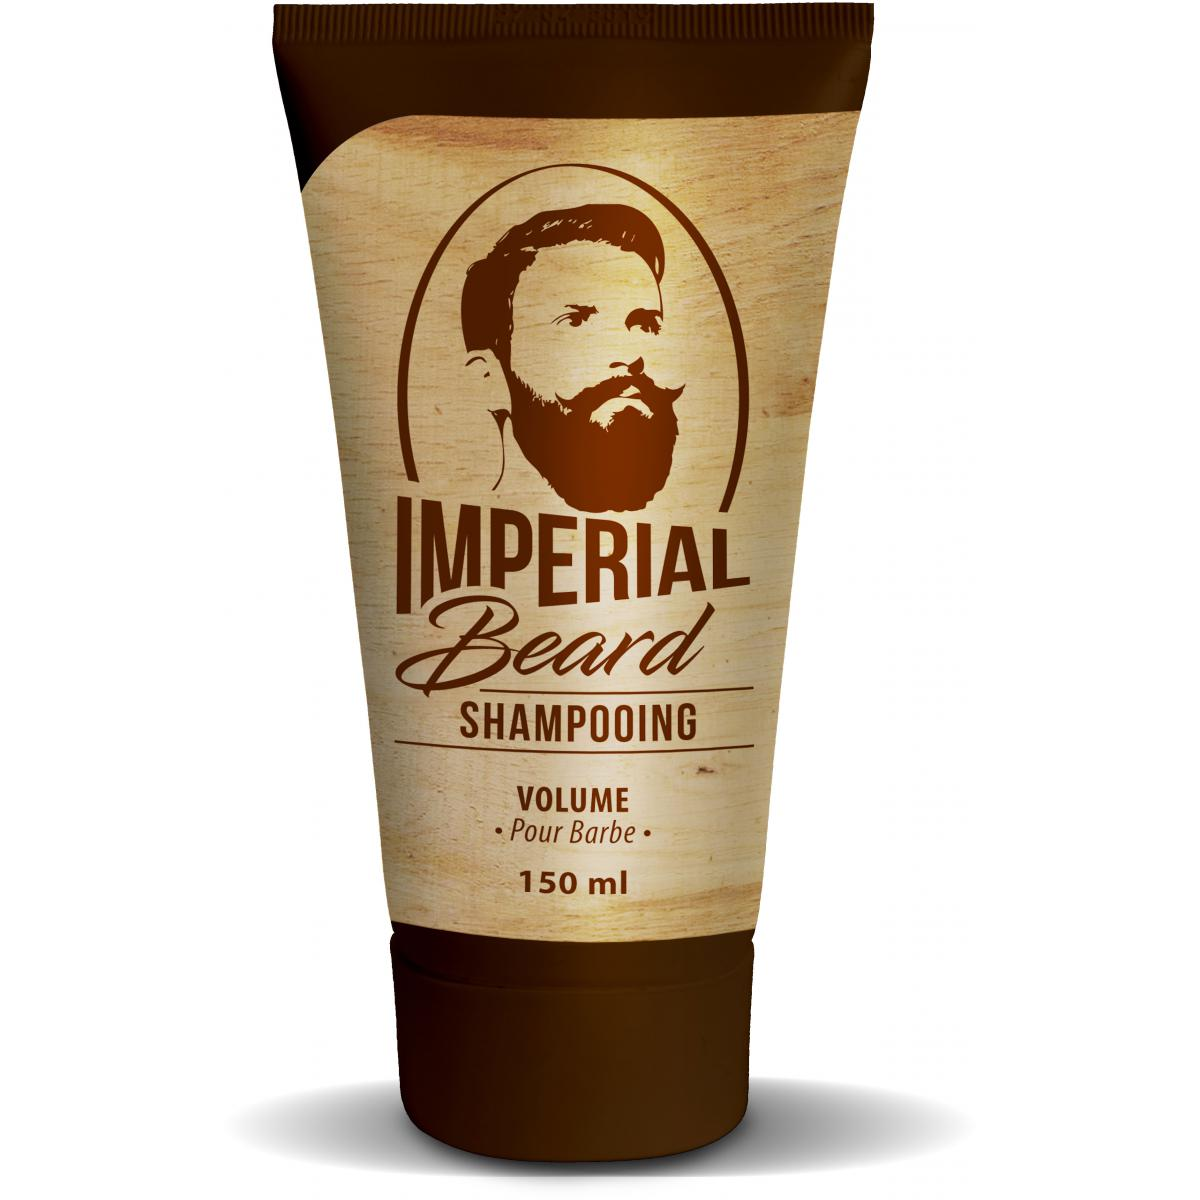 Shampoing Volume pour Barbe Imperial Beard